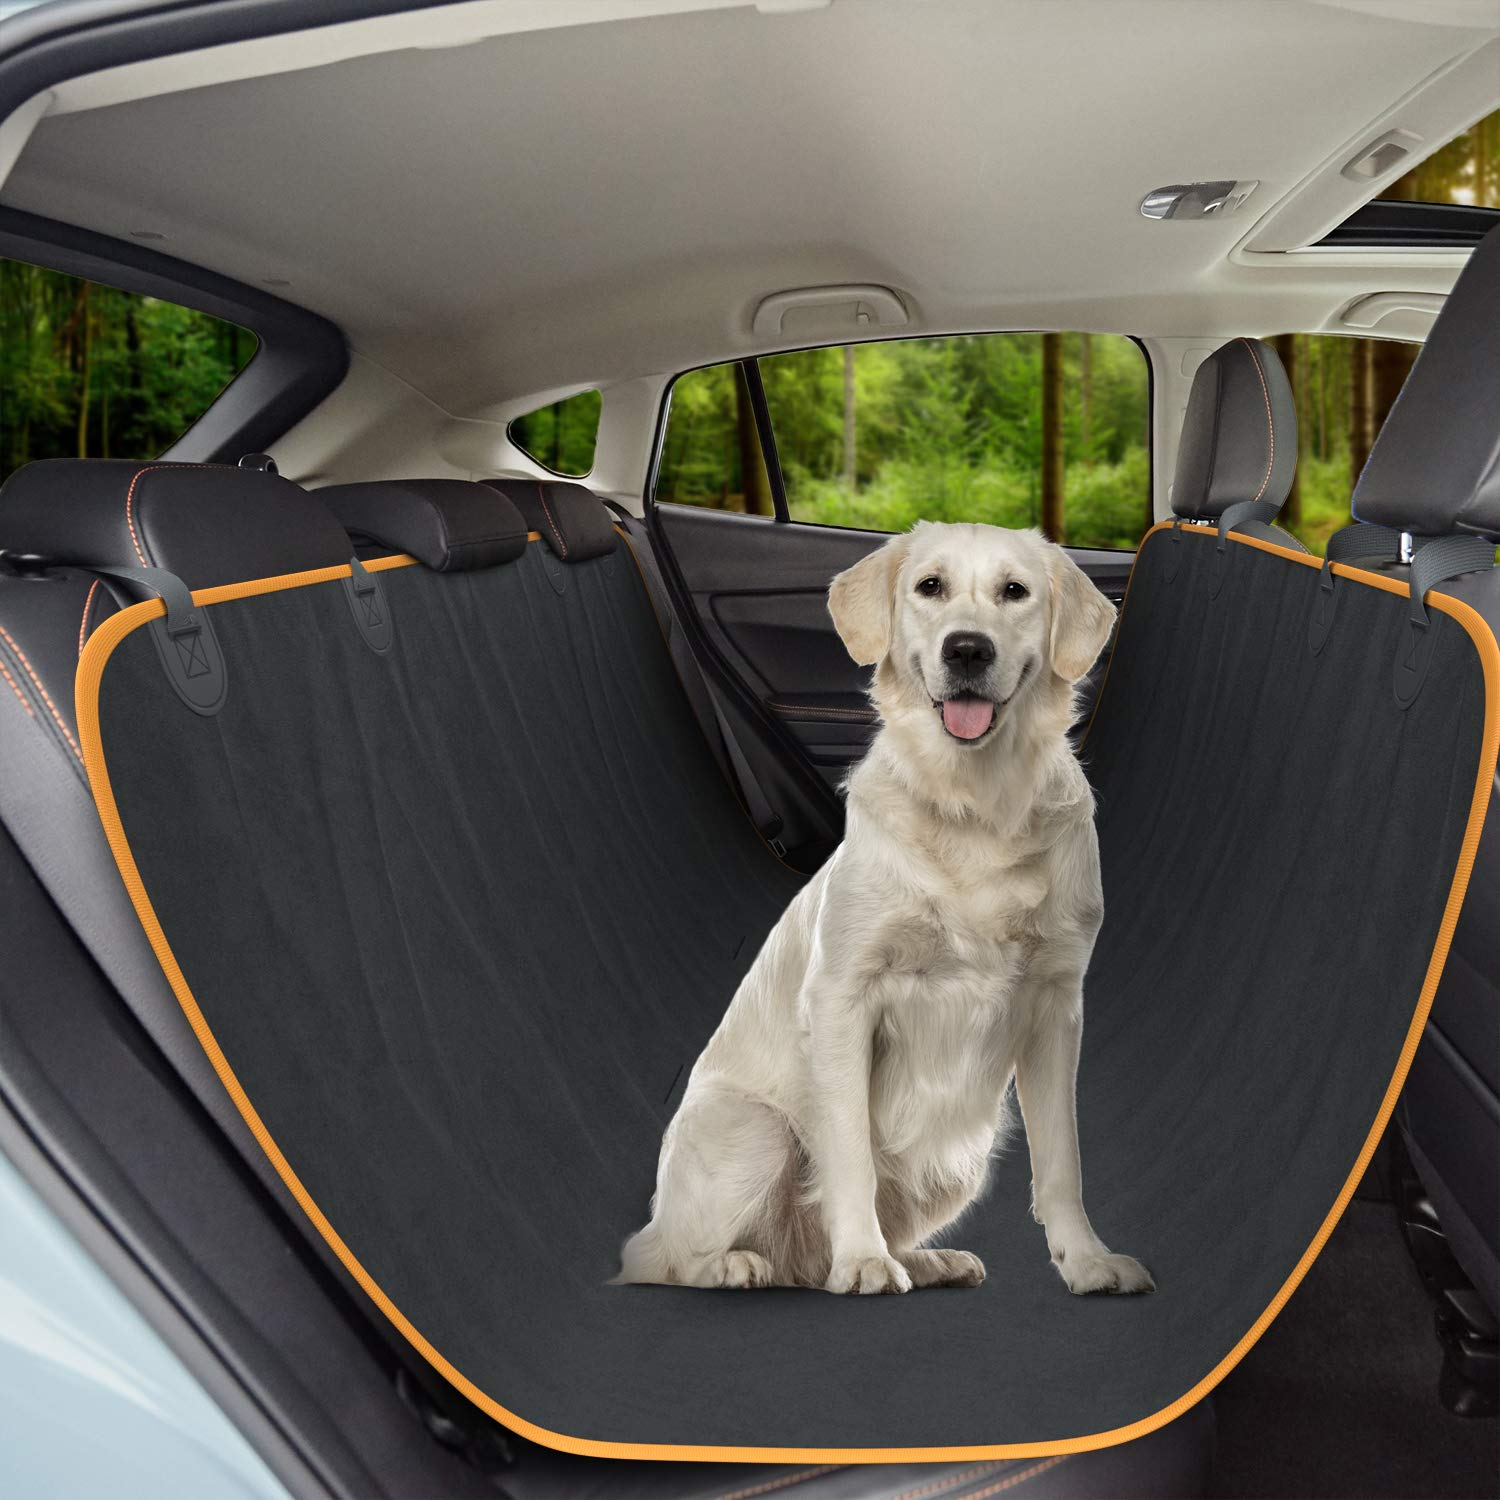 Active Pets Original Dog Back Seat Cover Protector Waterproof Scratchproof Hammock for Dogs Backseat Protection Against Dirt and Pet Fur Durable Pets Seat Covers for Cars Trucks SUVs by Active Pets